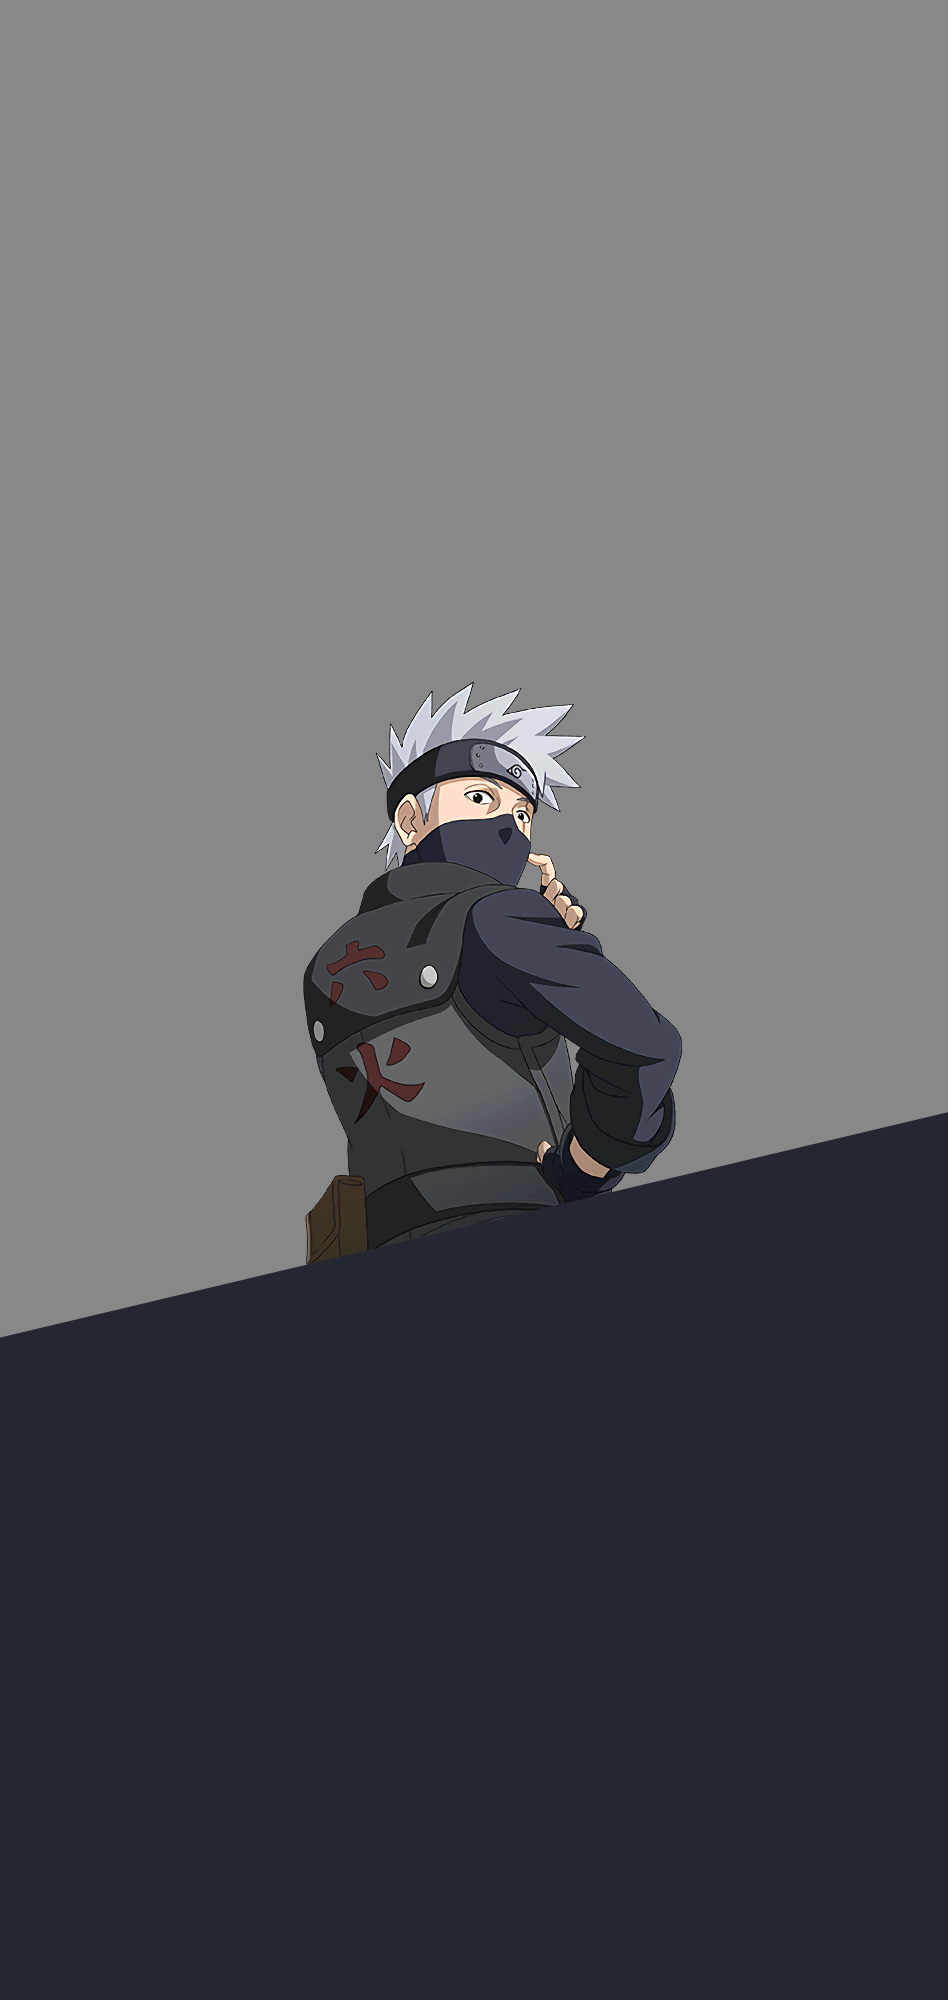 naruto anime kakashi background phone wallpaper